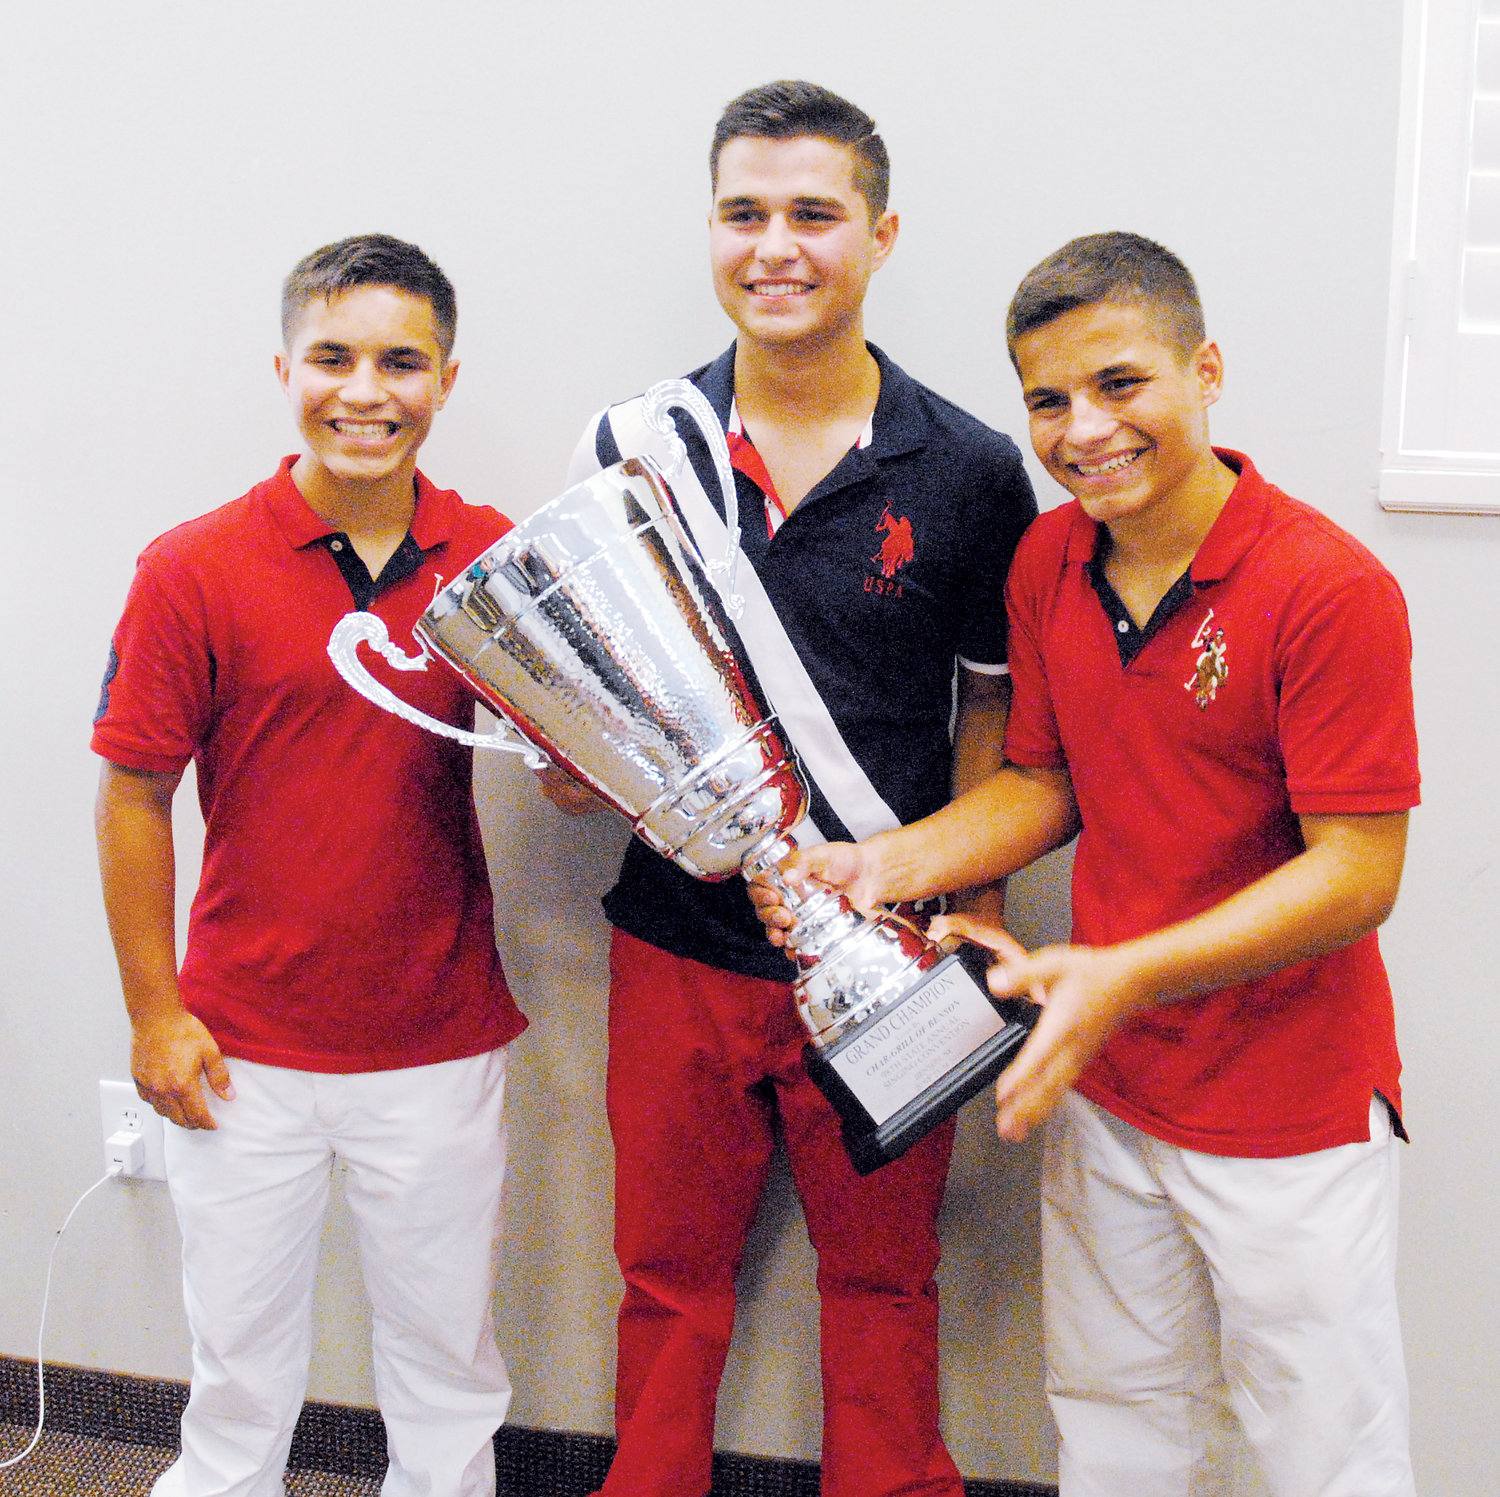 Last year's Grand Championship Cup winners,  the 3 Heath Brothers — Christian, Nicholas and Clayton Heath — from Thomasville will return to compete in the 99th annual State Singing Convention next month.